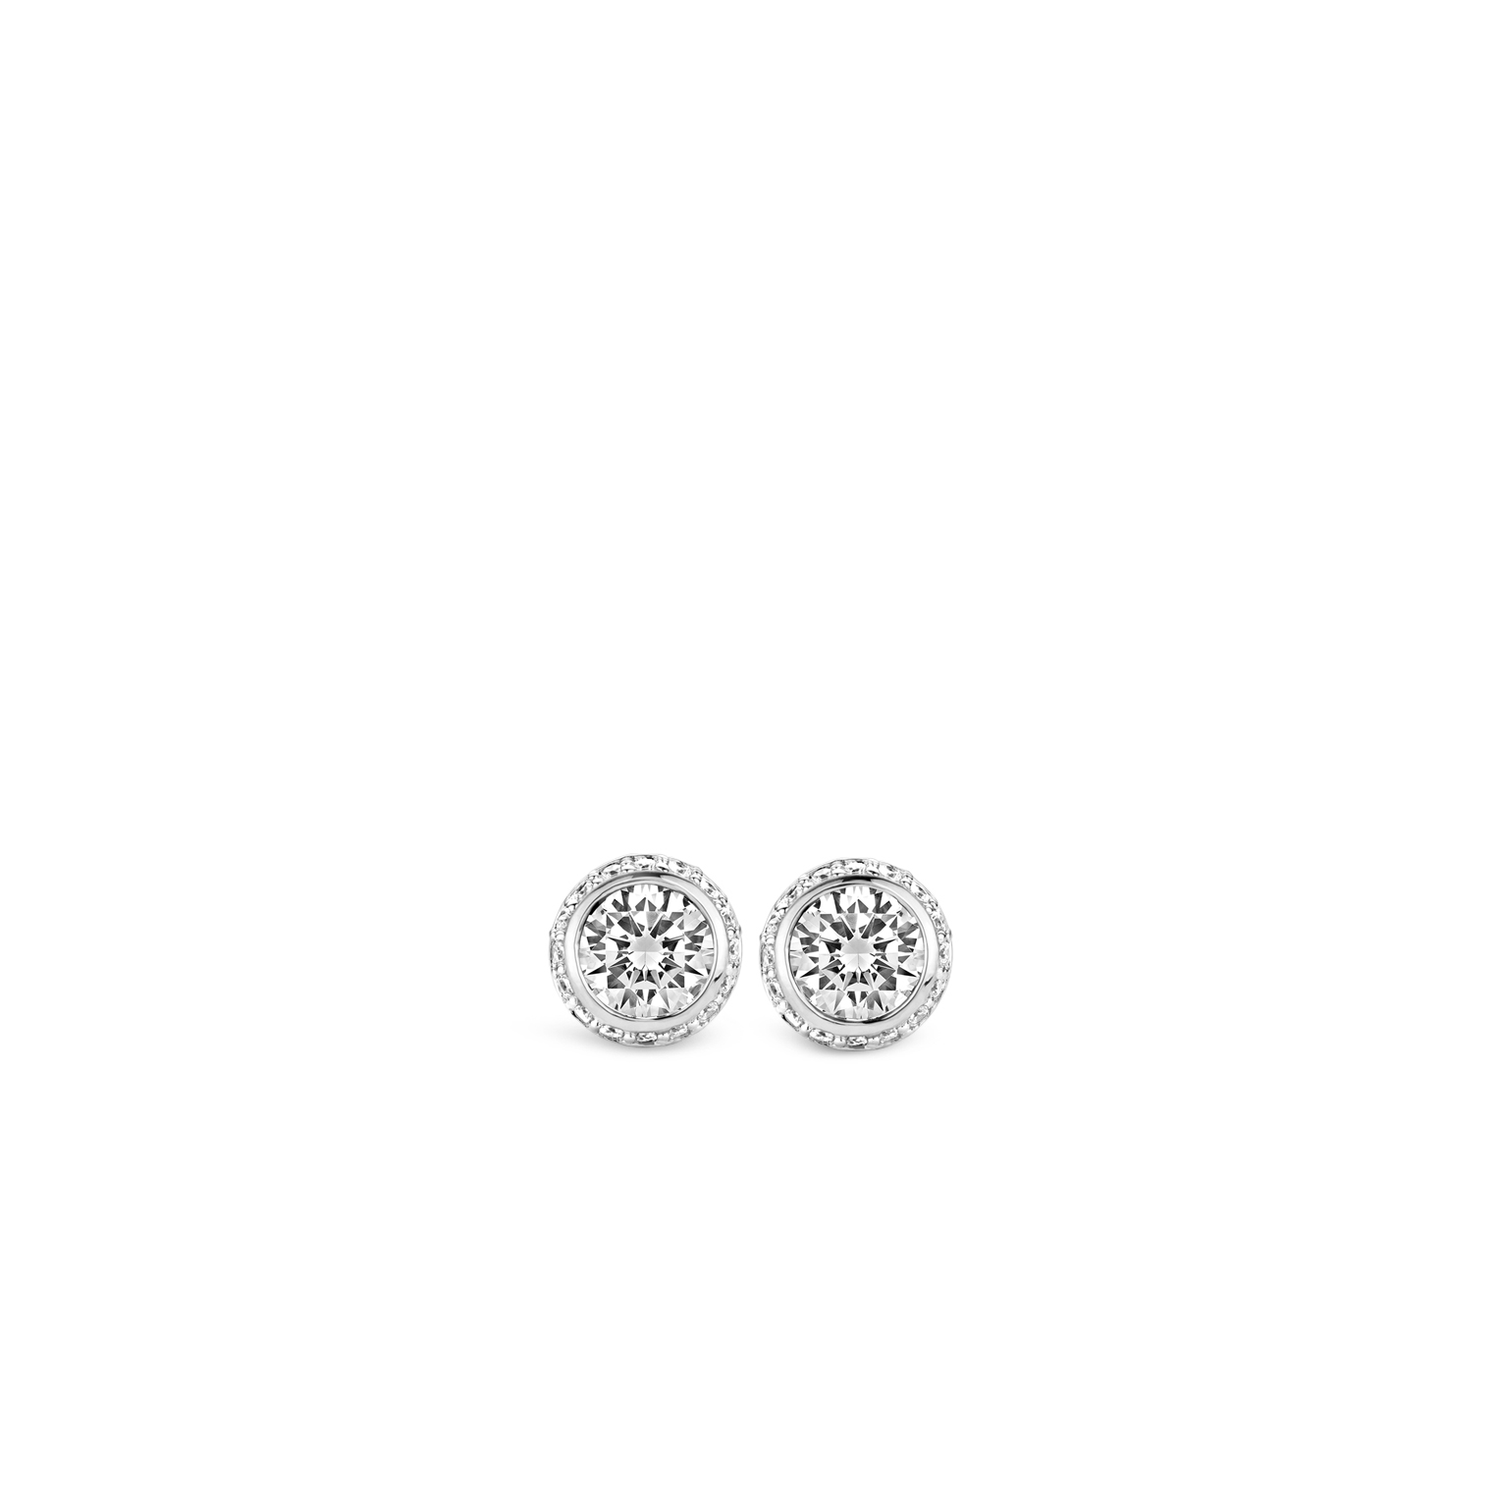 TI SENTO - Milano Earrings 7655ZI